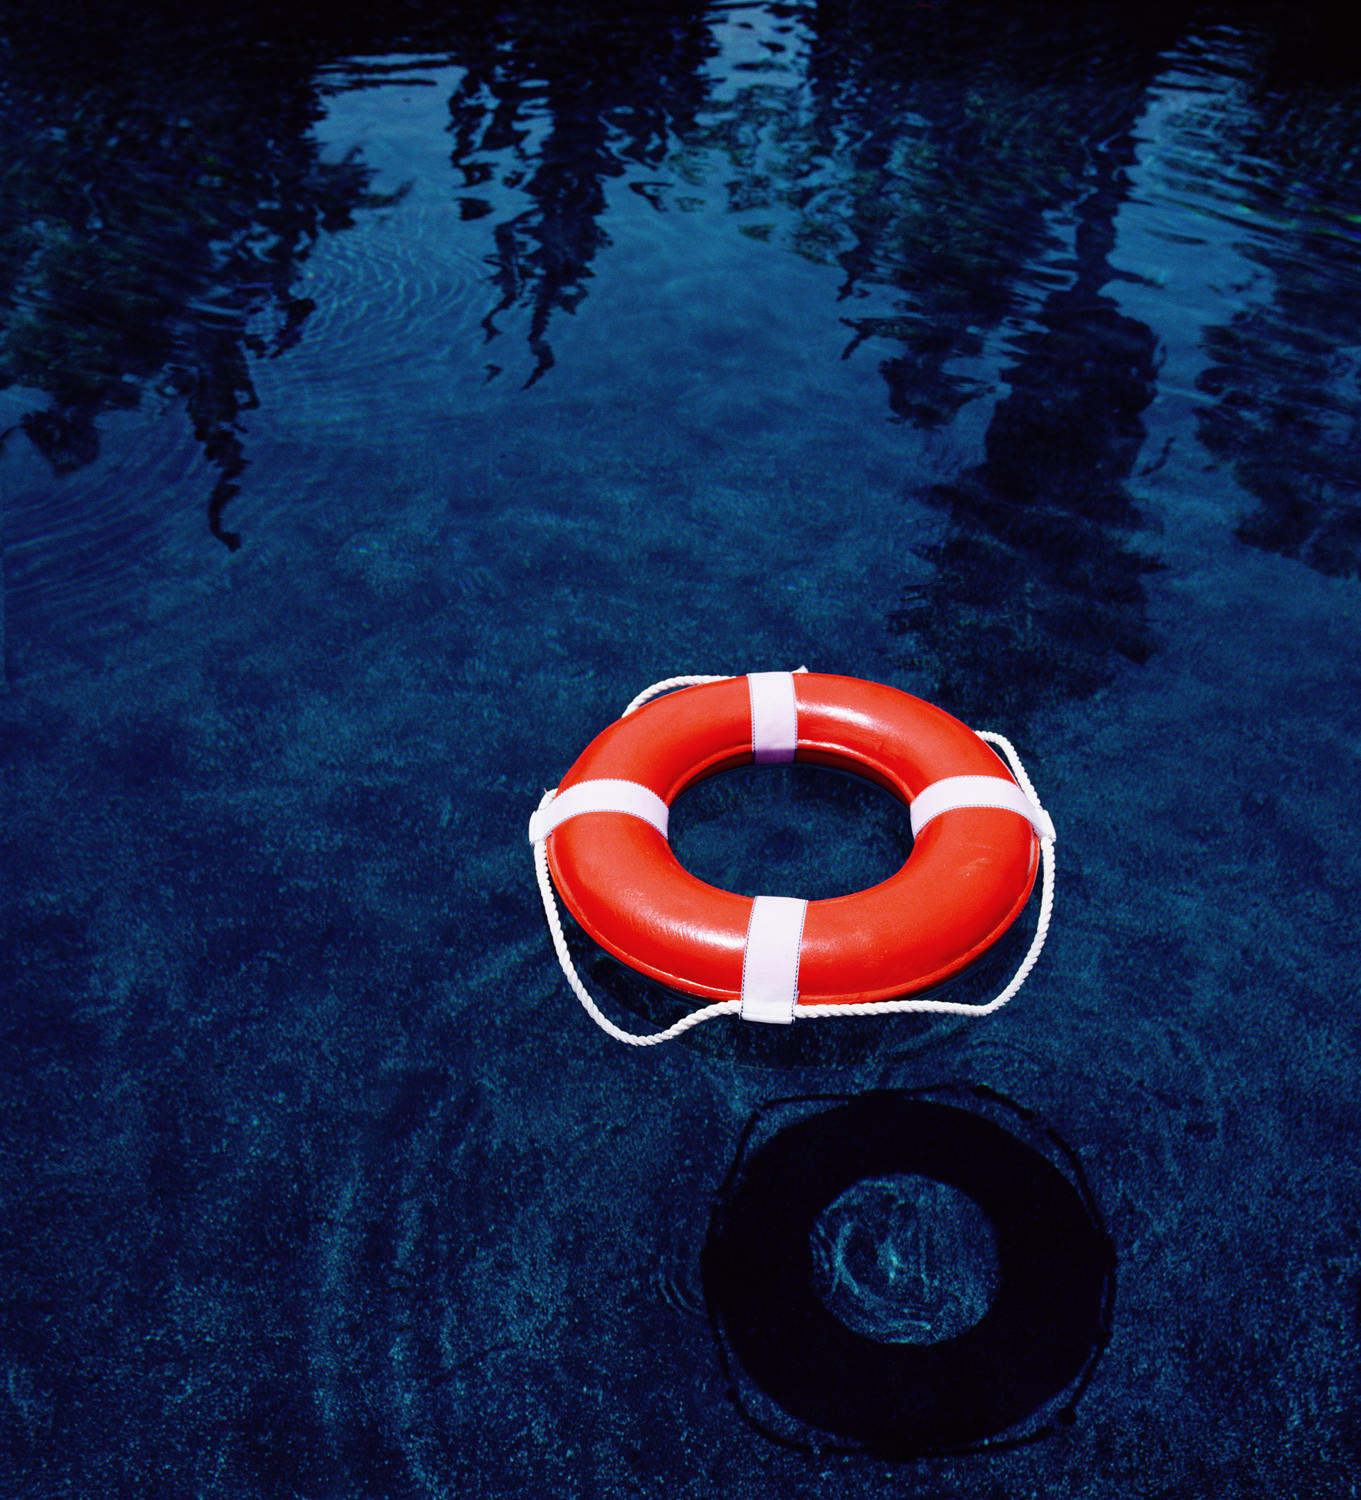 Life preserver in the water